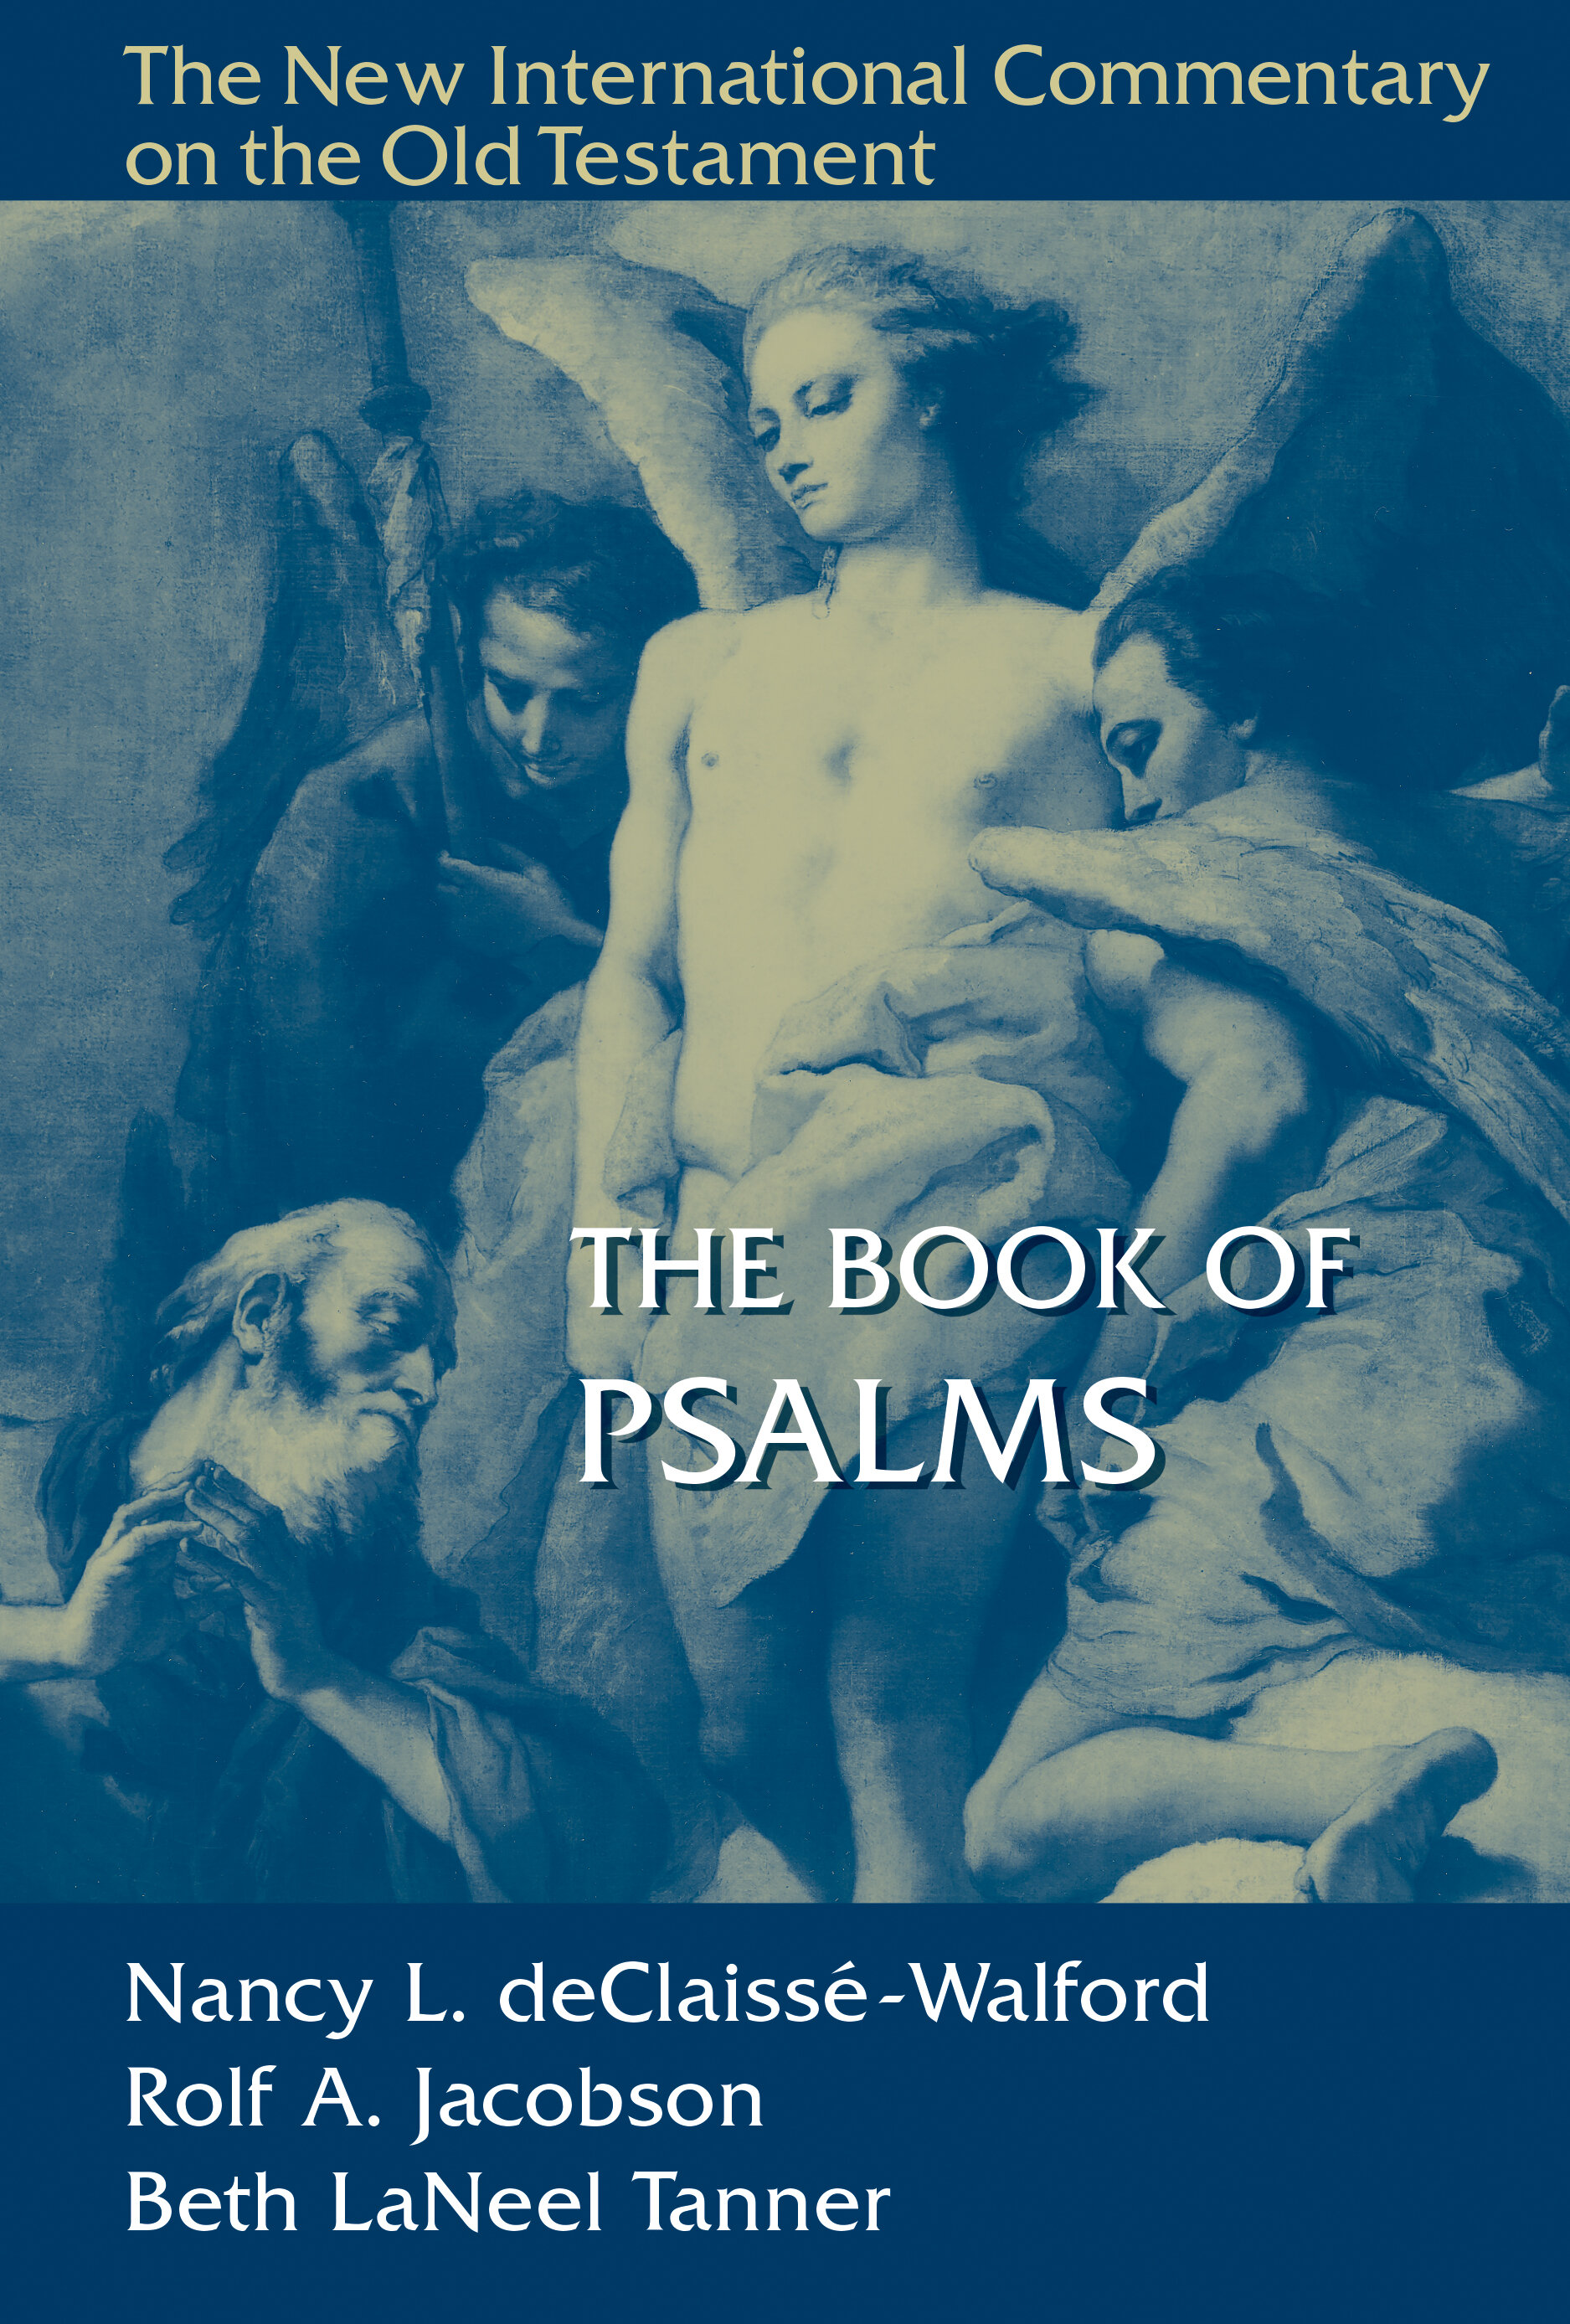 The Book of Psalms (The New International Commentary on the Old Testament | NICOT)